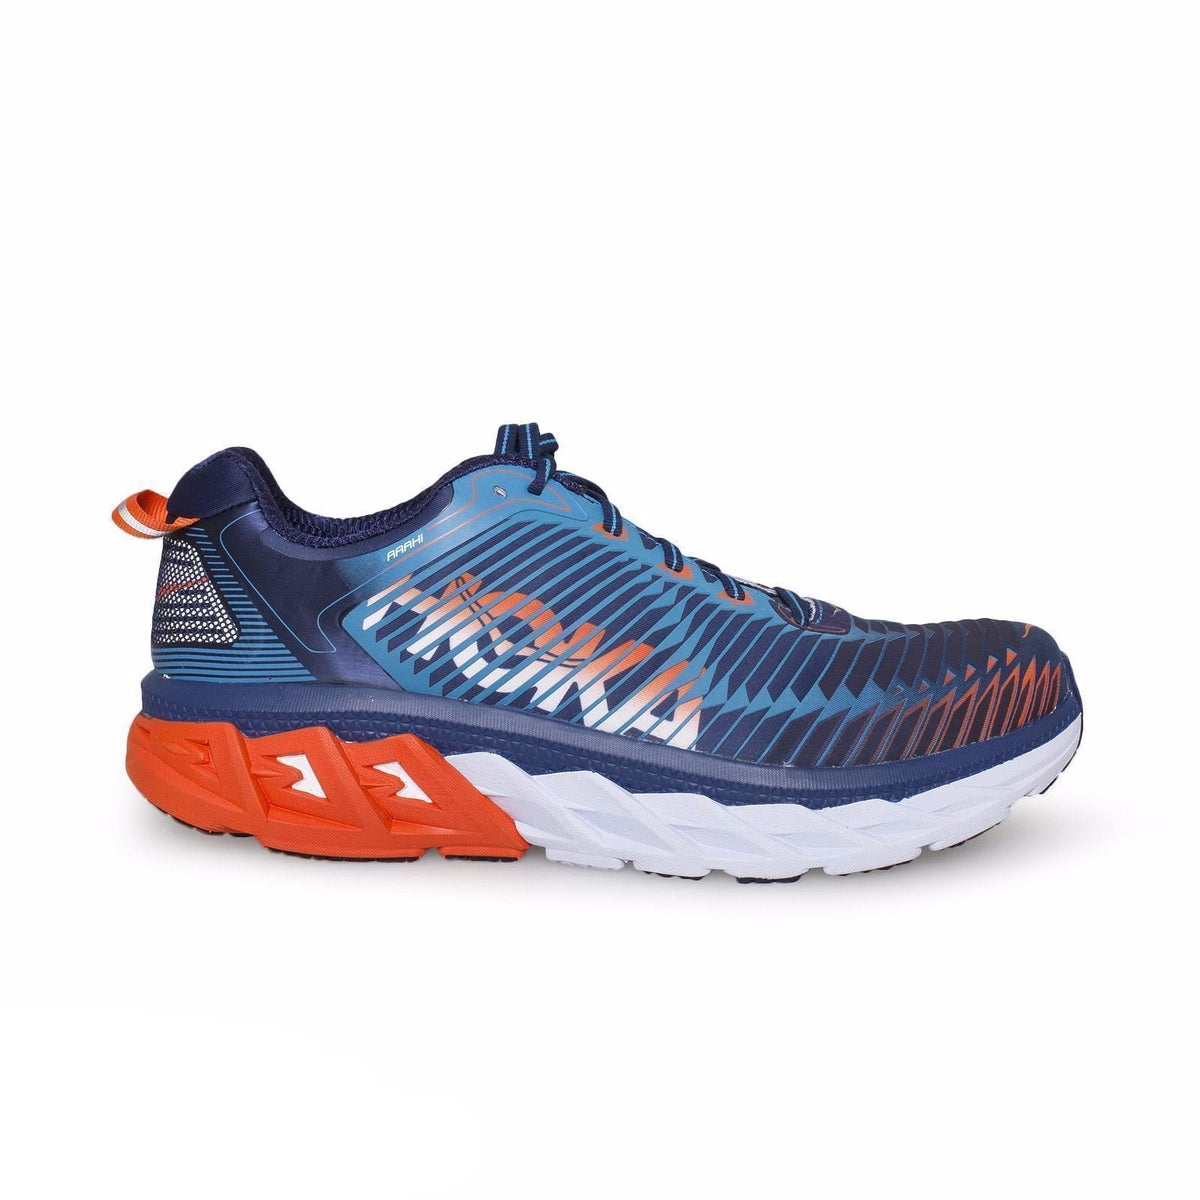 Hoka Arahi Medieval Blue/Red Orange Running Shoes